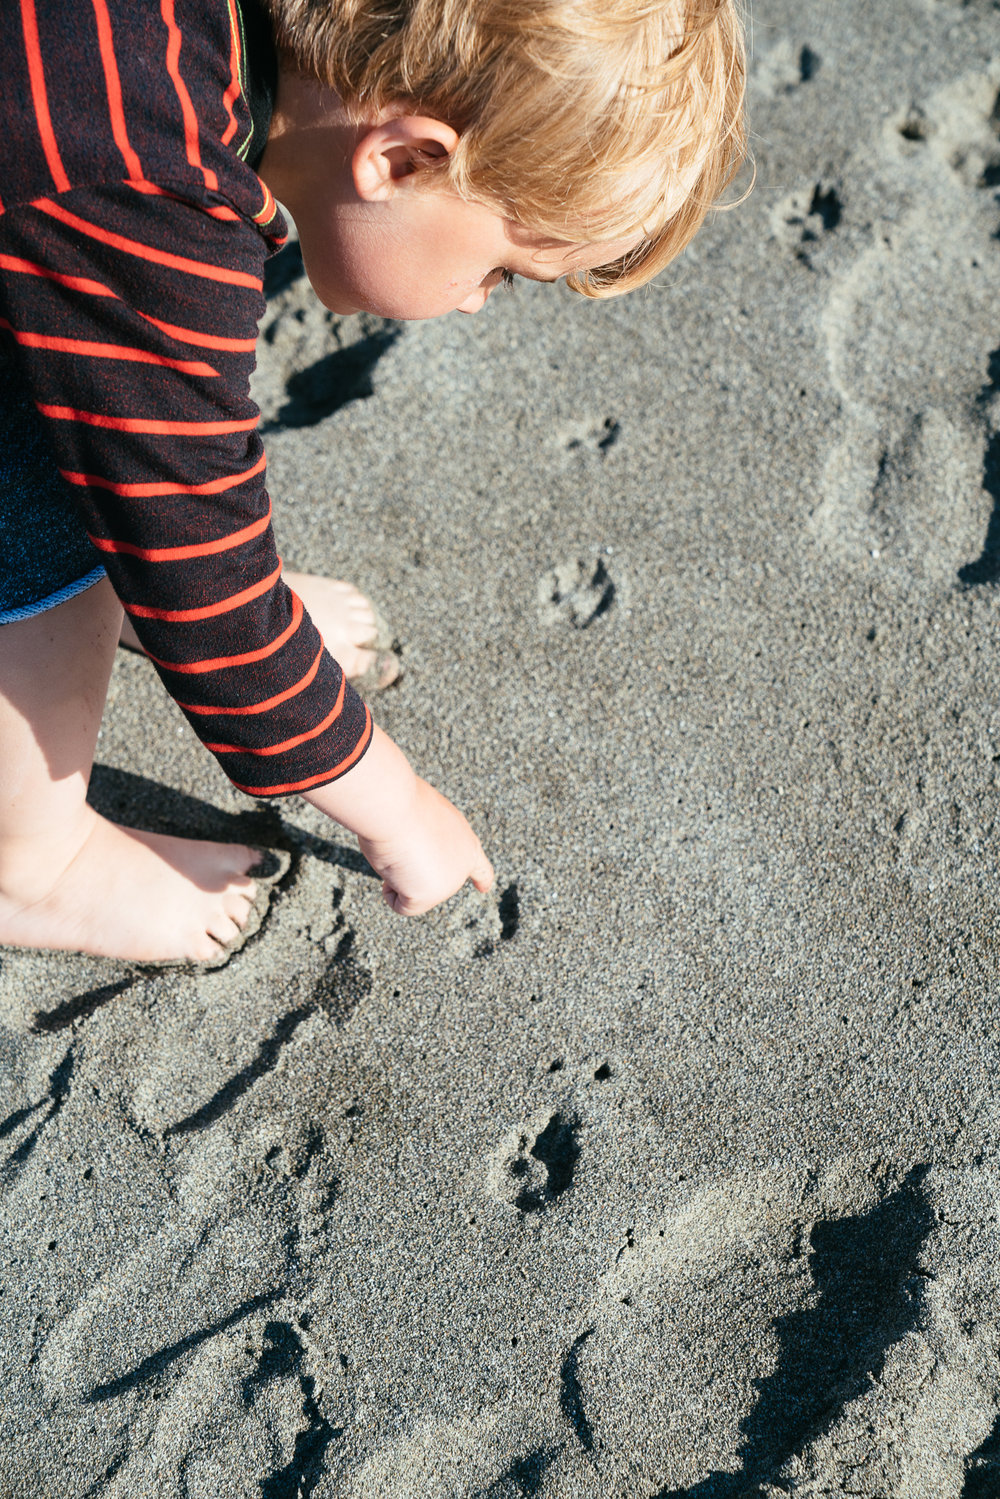 Examining creature tracks, in this case a local puppy out for a walk.